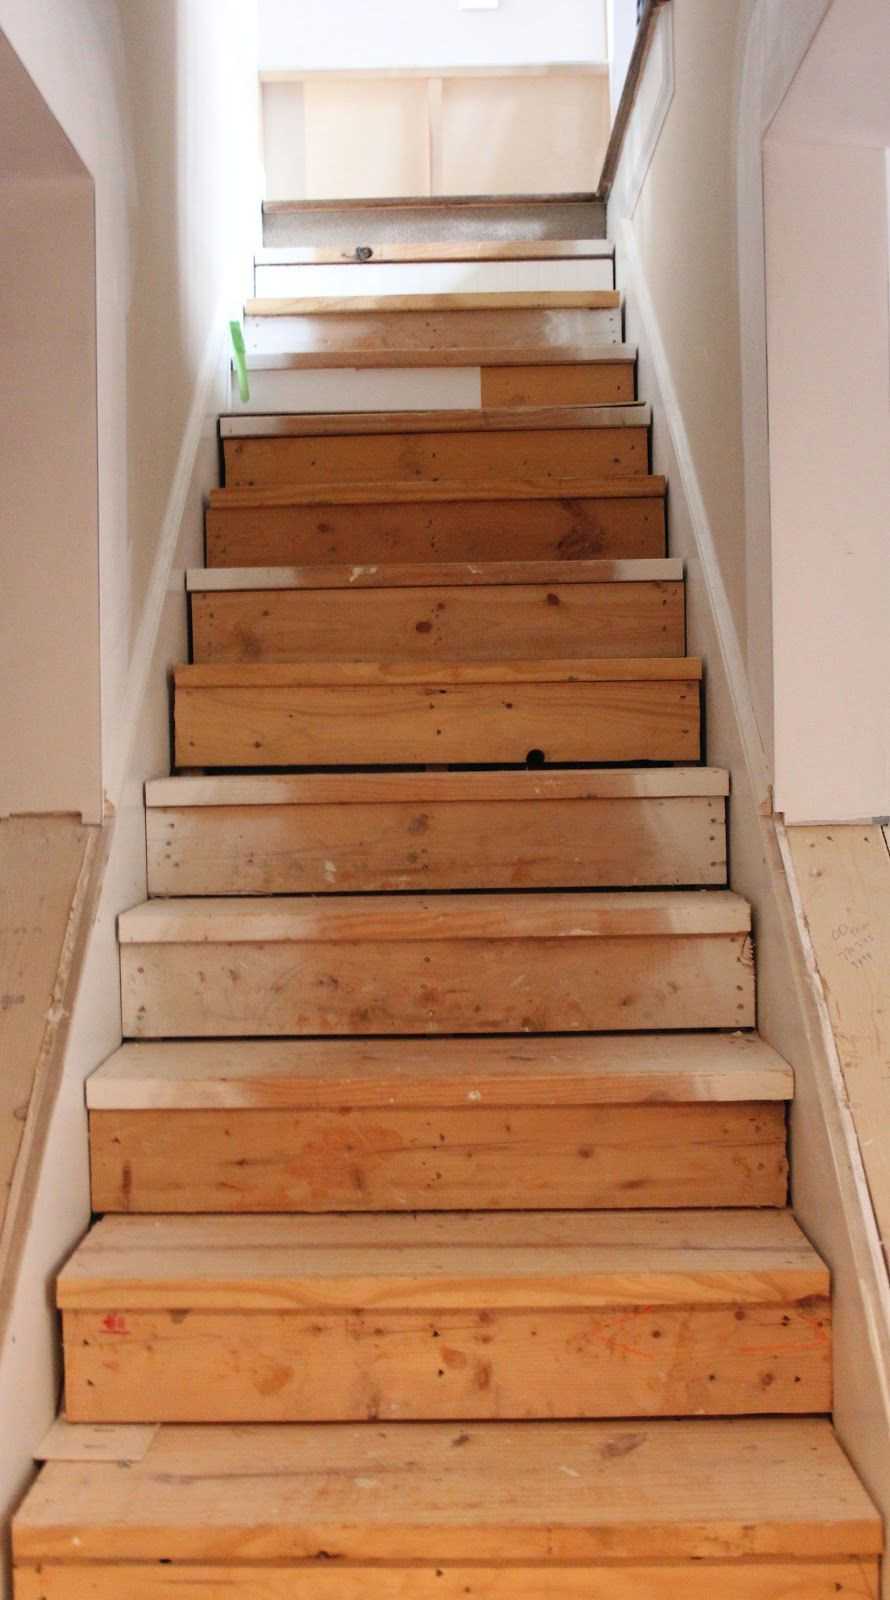 hardwood floors upstairs noise of this is the best idea for updating stairs on a budget totally doing regarding this is the best idea for updating stairs on a budget totally doing this once our outdoor projects are done